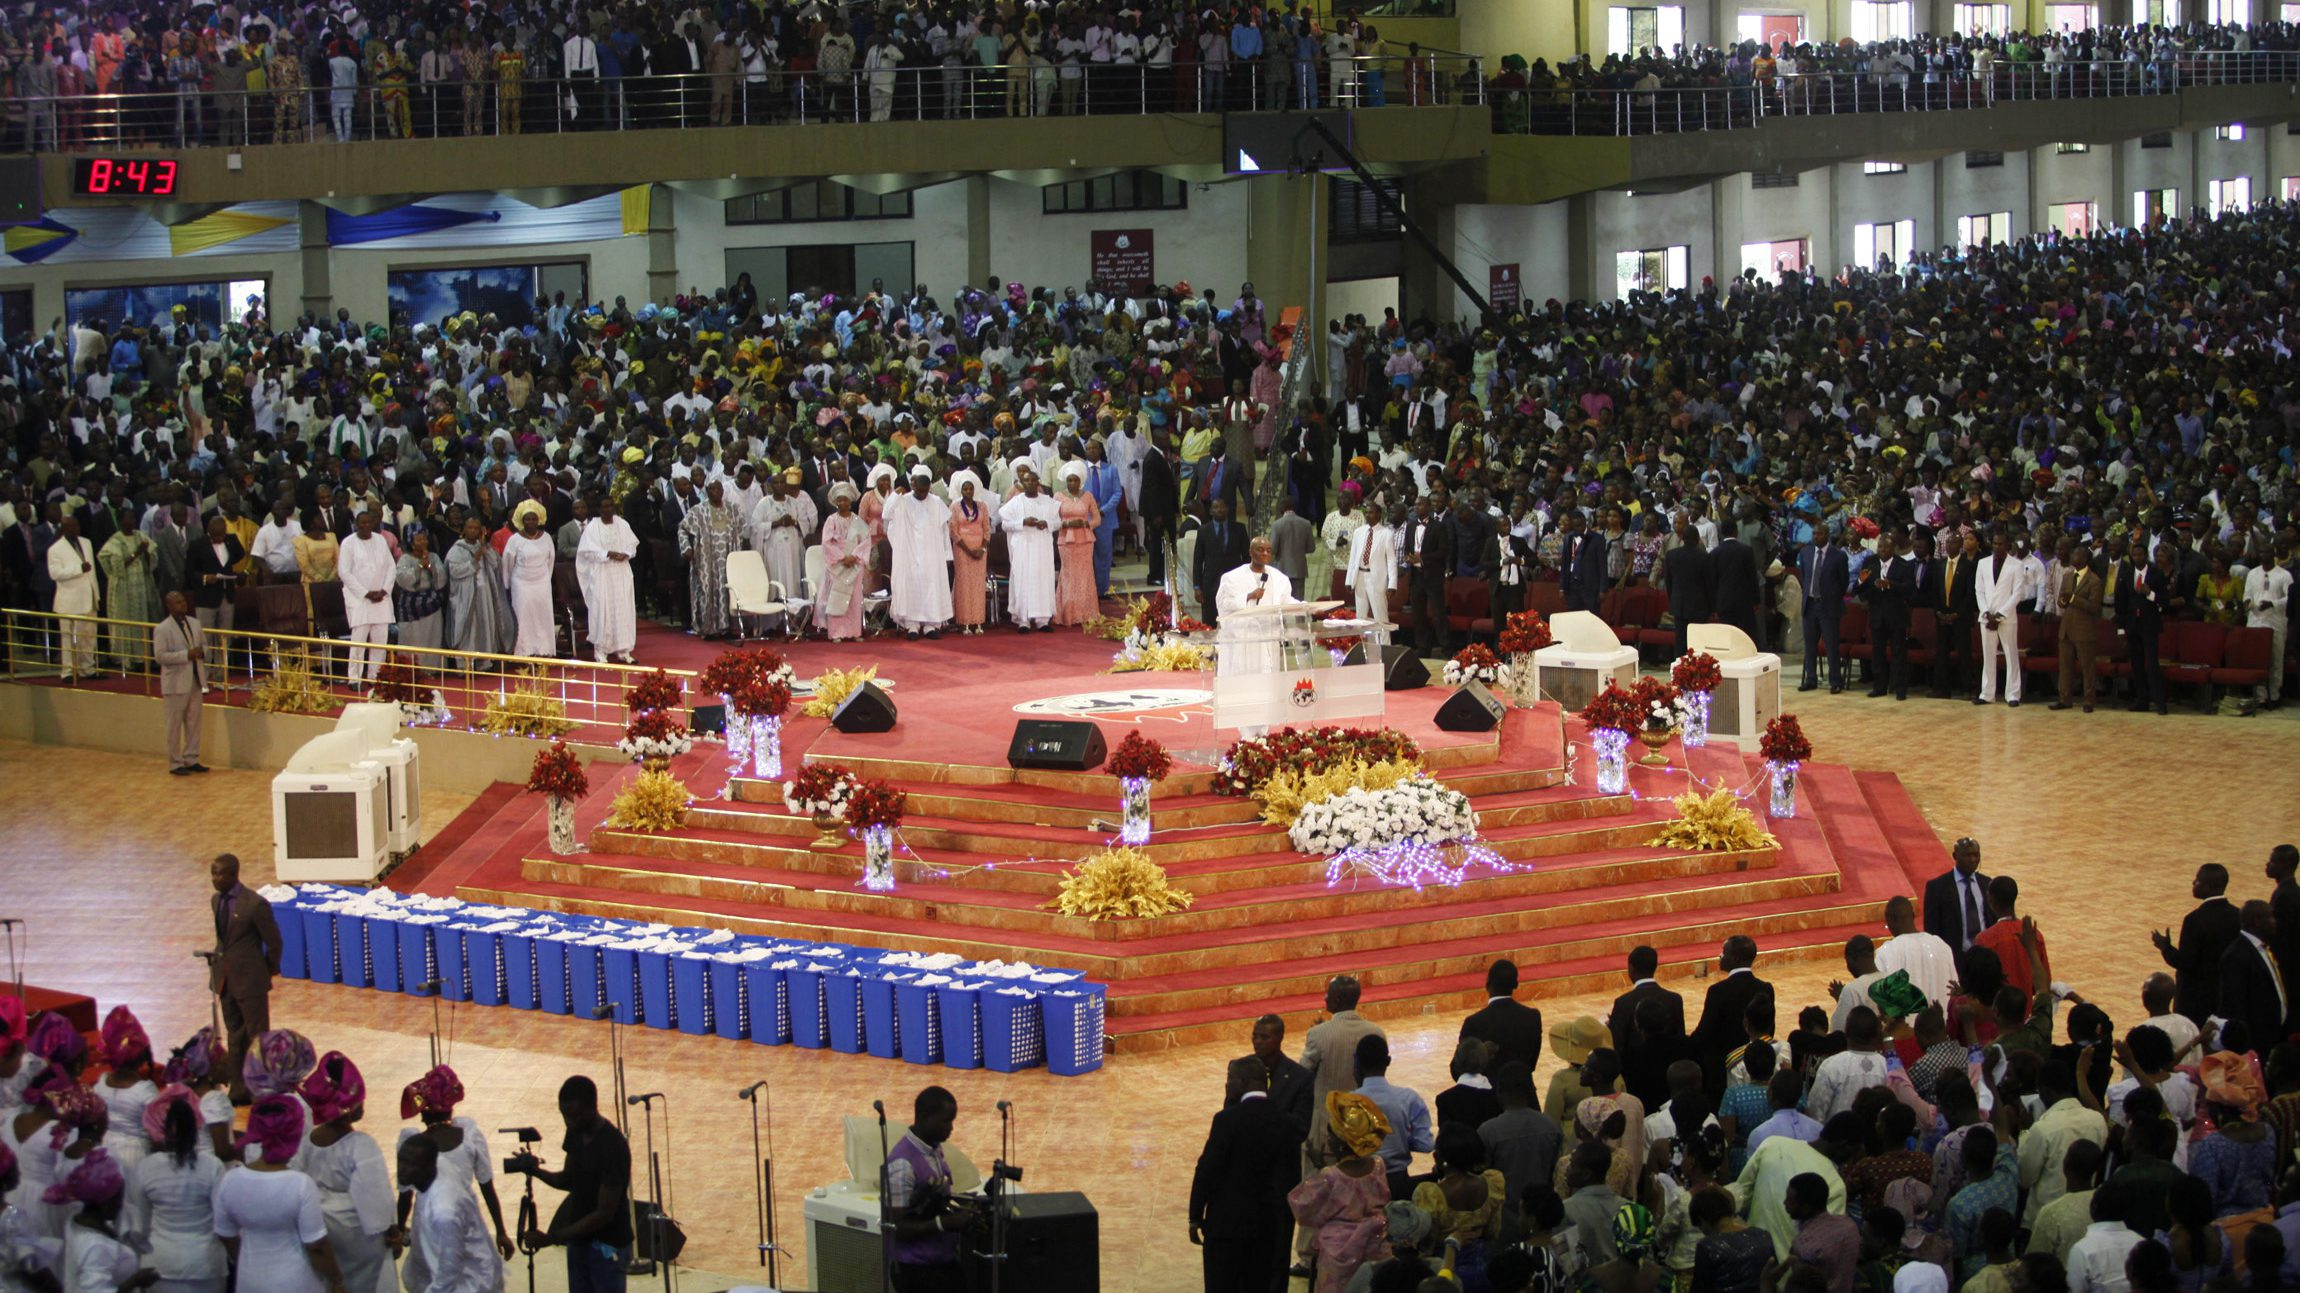 Living Faith Church, also known as Winners' Chapel, conducts a service for worshippers in the church in Ota, Nigeria.